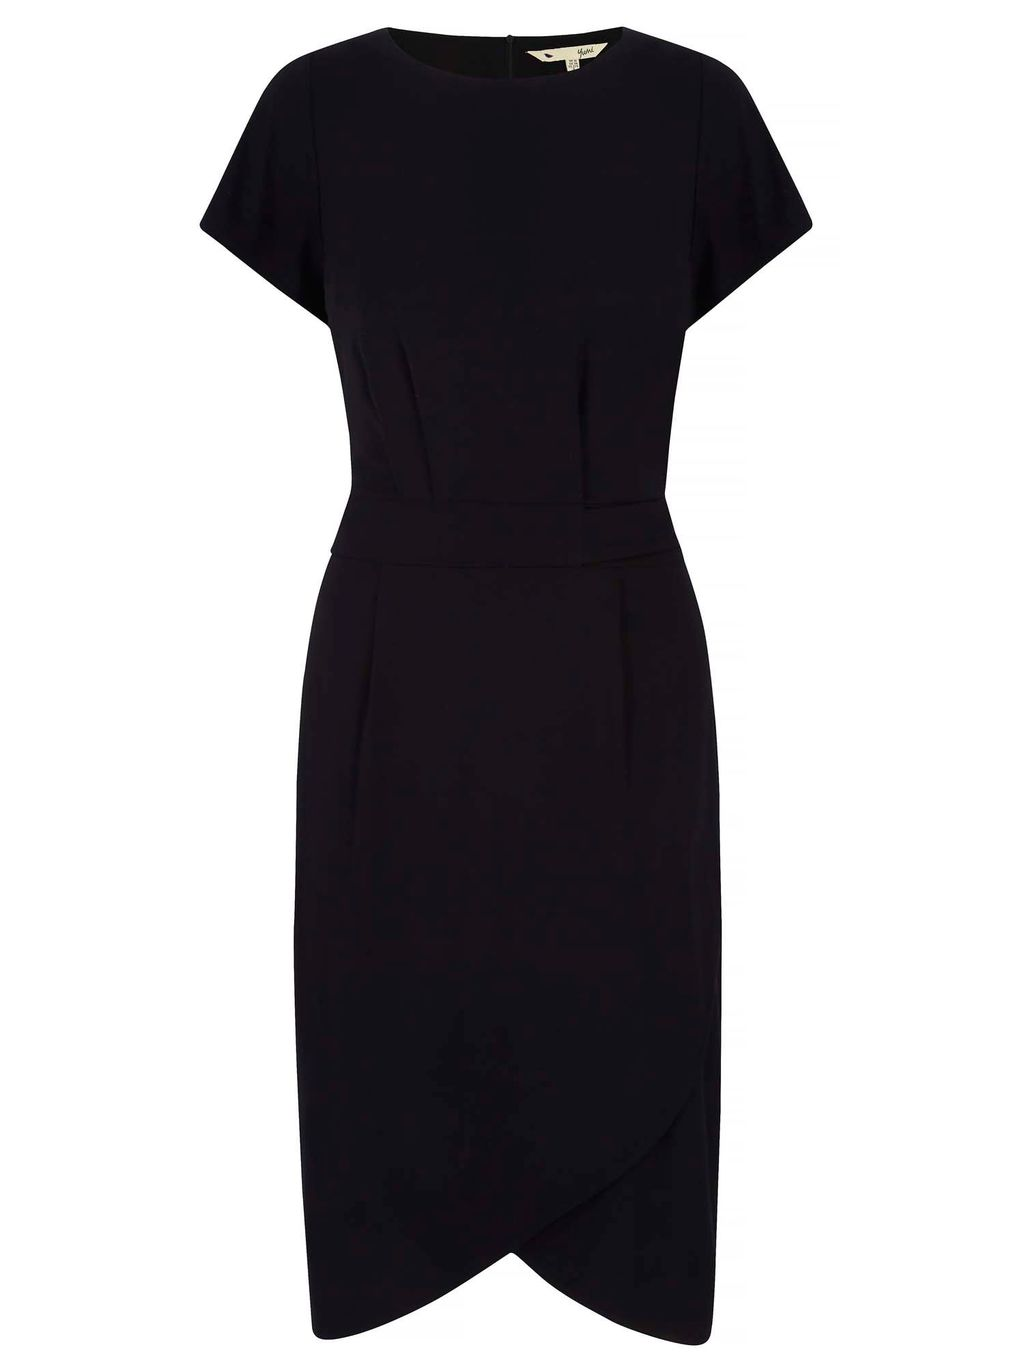 Jersey Wrap Front Dress, Black - style: shift; length: below the knee; neckline: v-neck; pattern: plain; predominant colour: black; occasions: evening; fit: body skimming; fibres: viscose/rayon - stretch; sleeve length: short sleeve; sleeve style: standard; pattern type: fabric; texture group: jersey - stretchy/drapey; season: a/w 2016; wardrobe: event